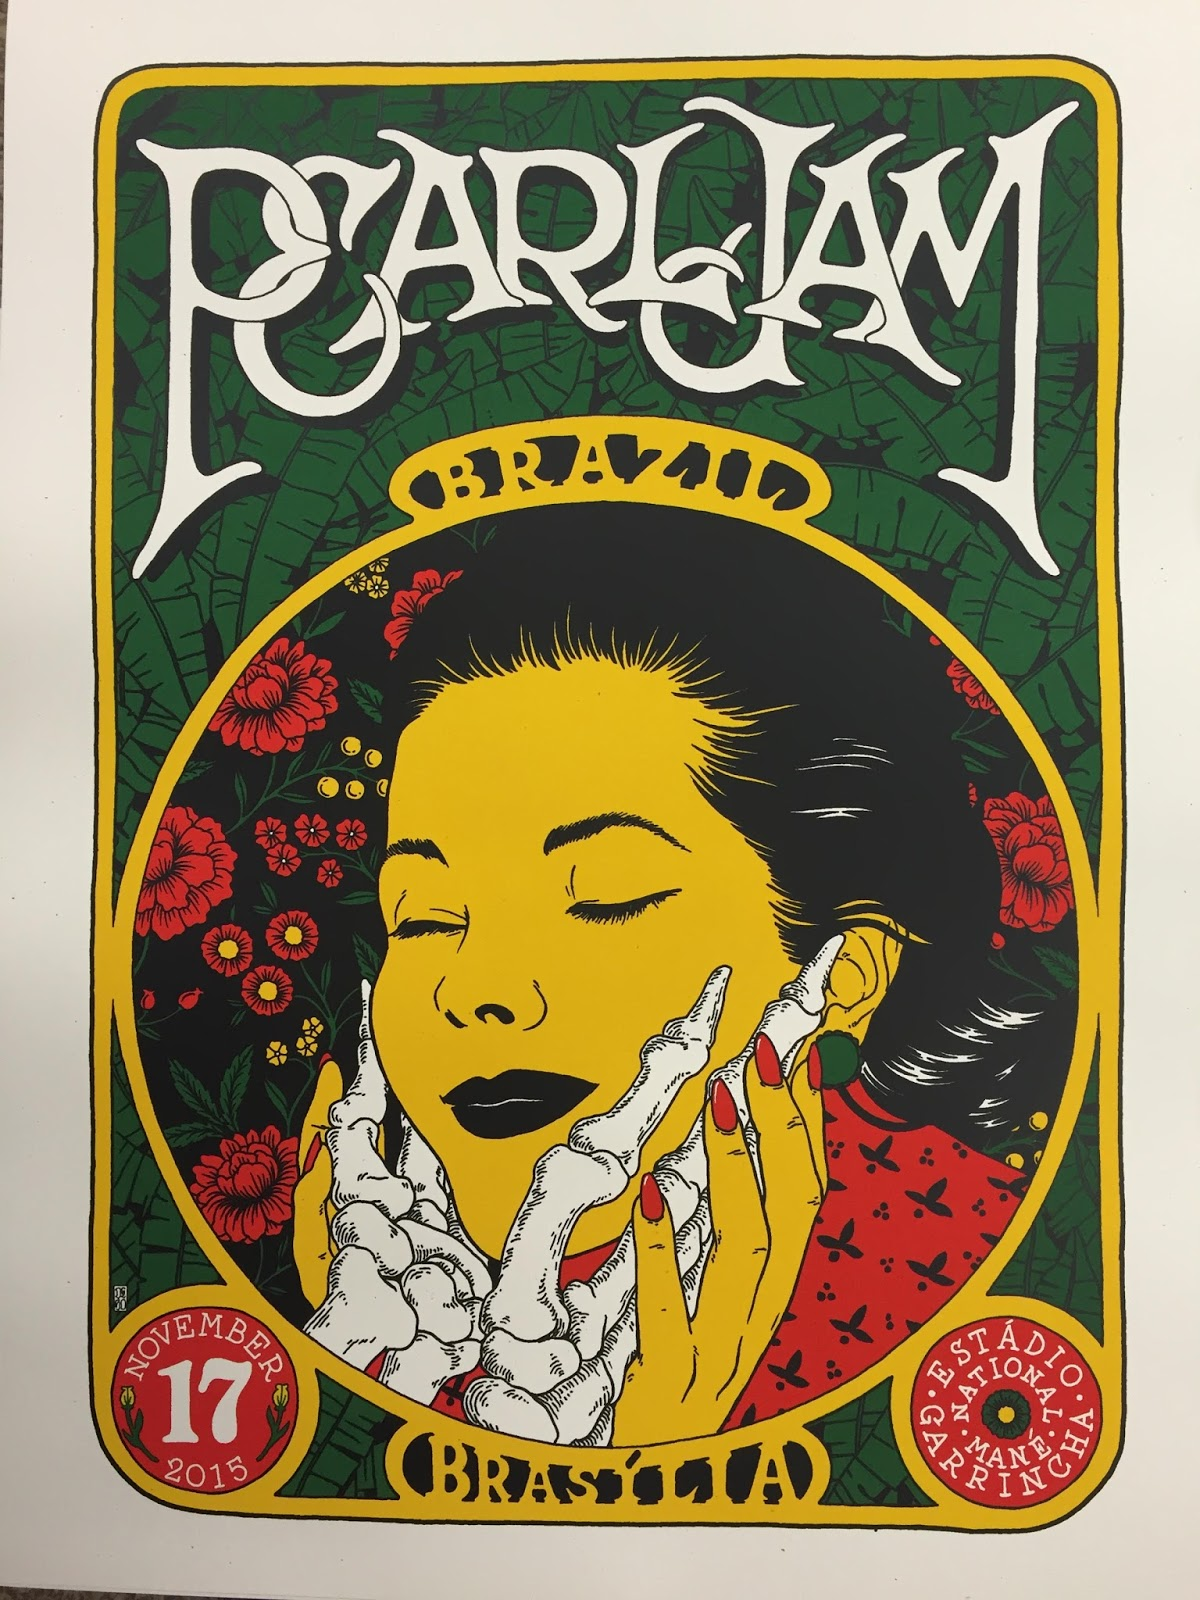 INSIDE THE ROCK POSTER FRAME BLOG: Broken Fingaz Pearl Jam Brasilia ...